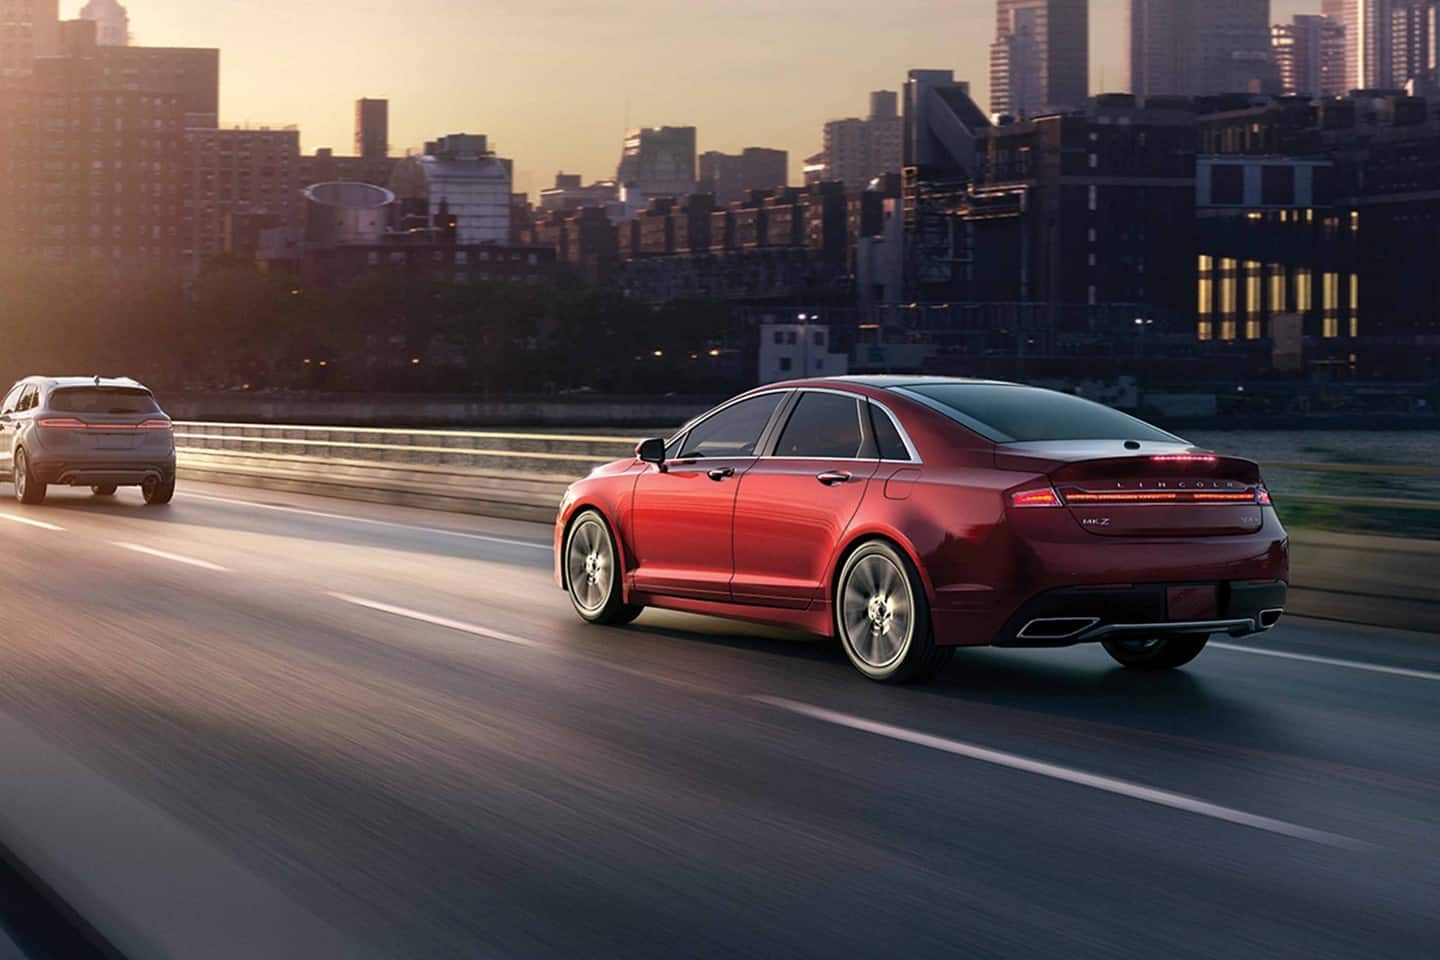 Experience the new 2019 Lincoln MKZ today at a Lincoln